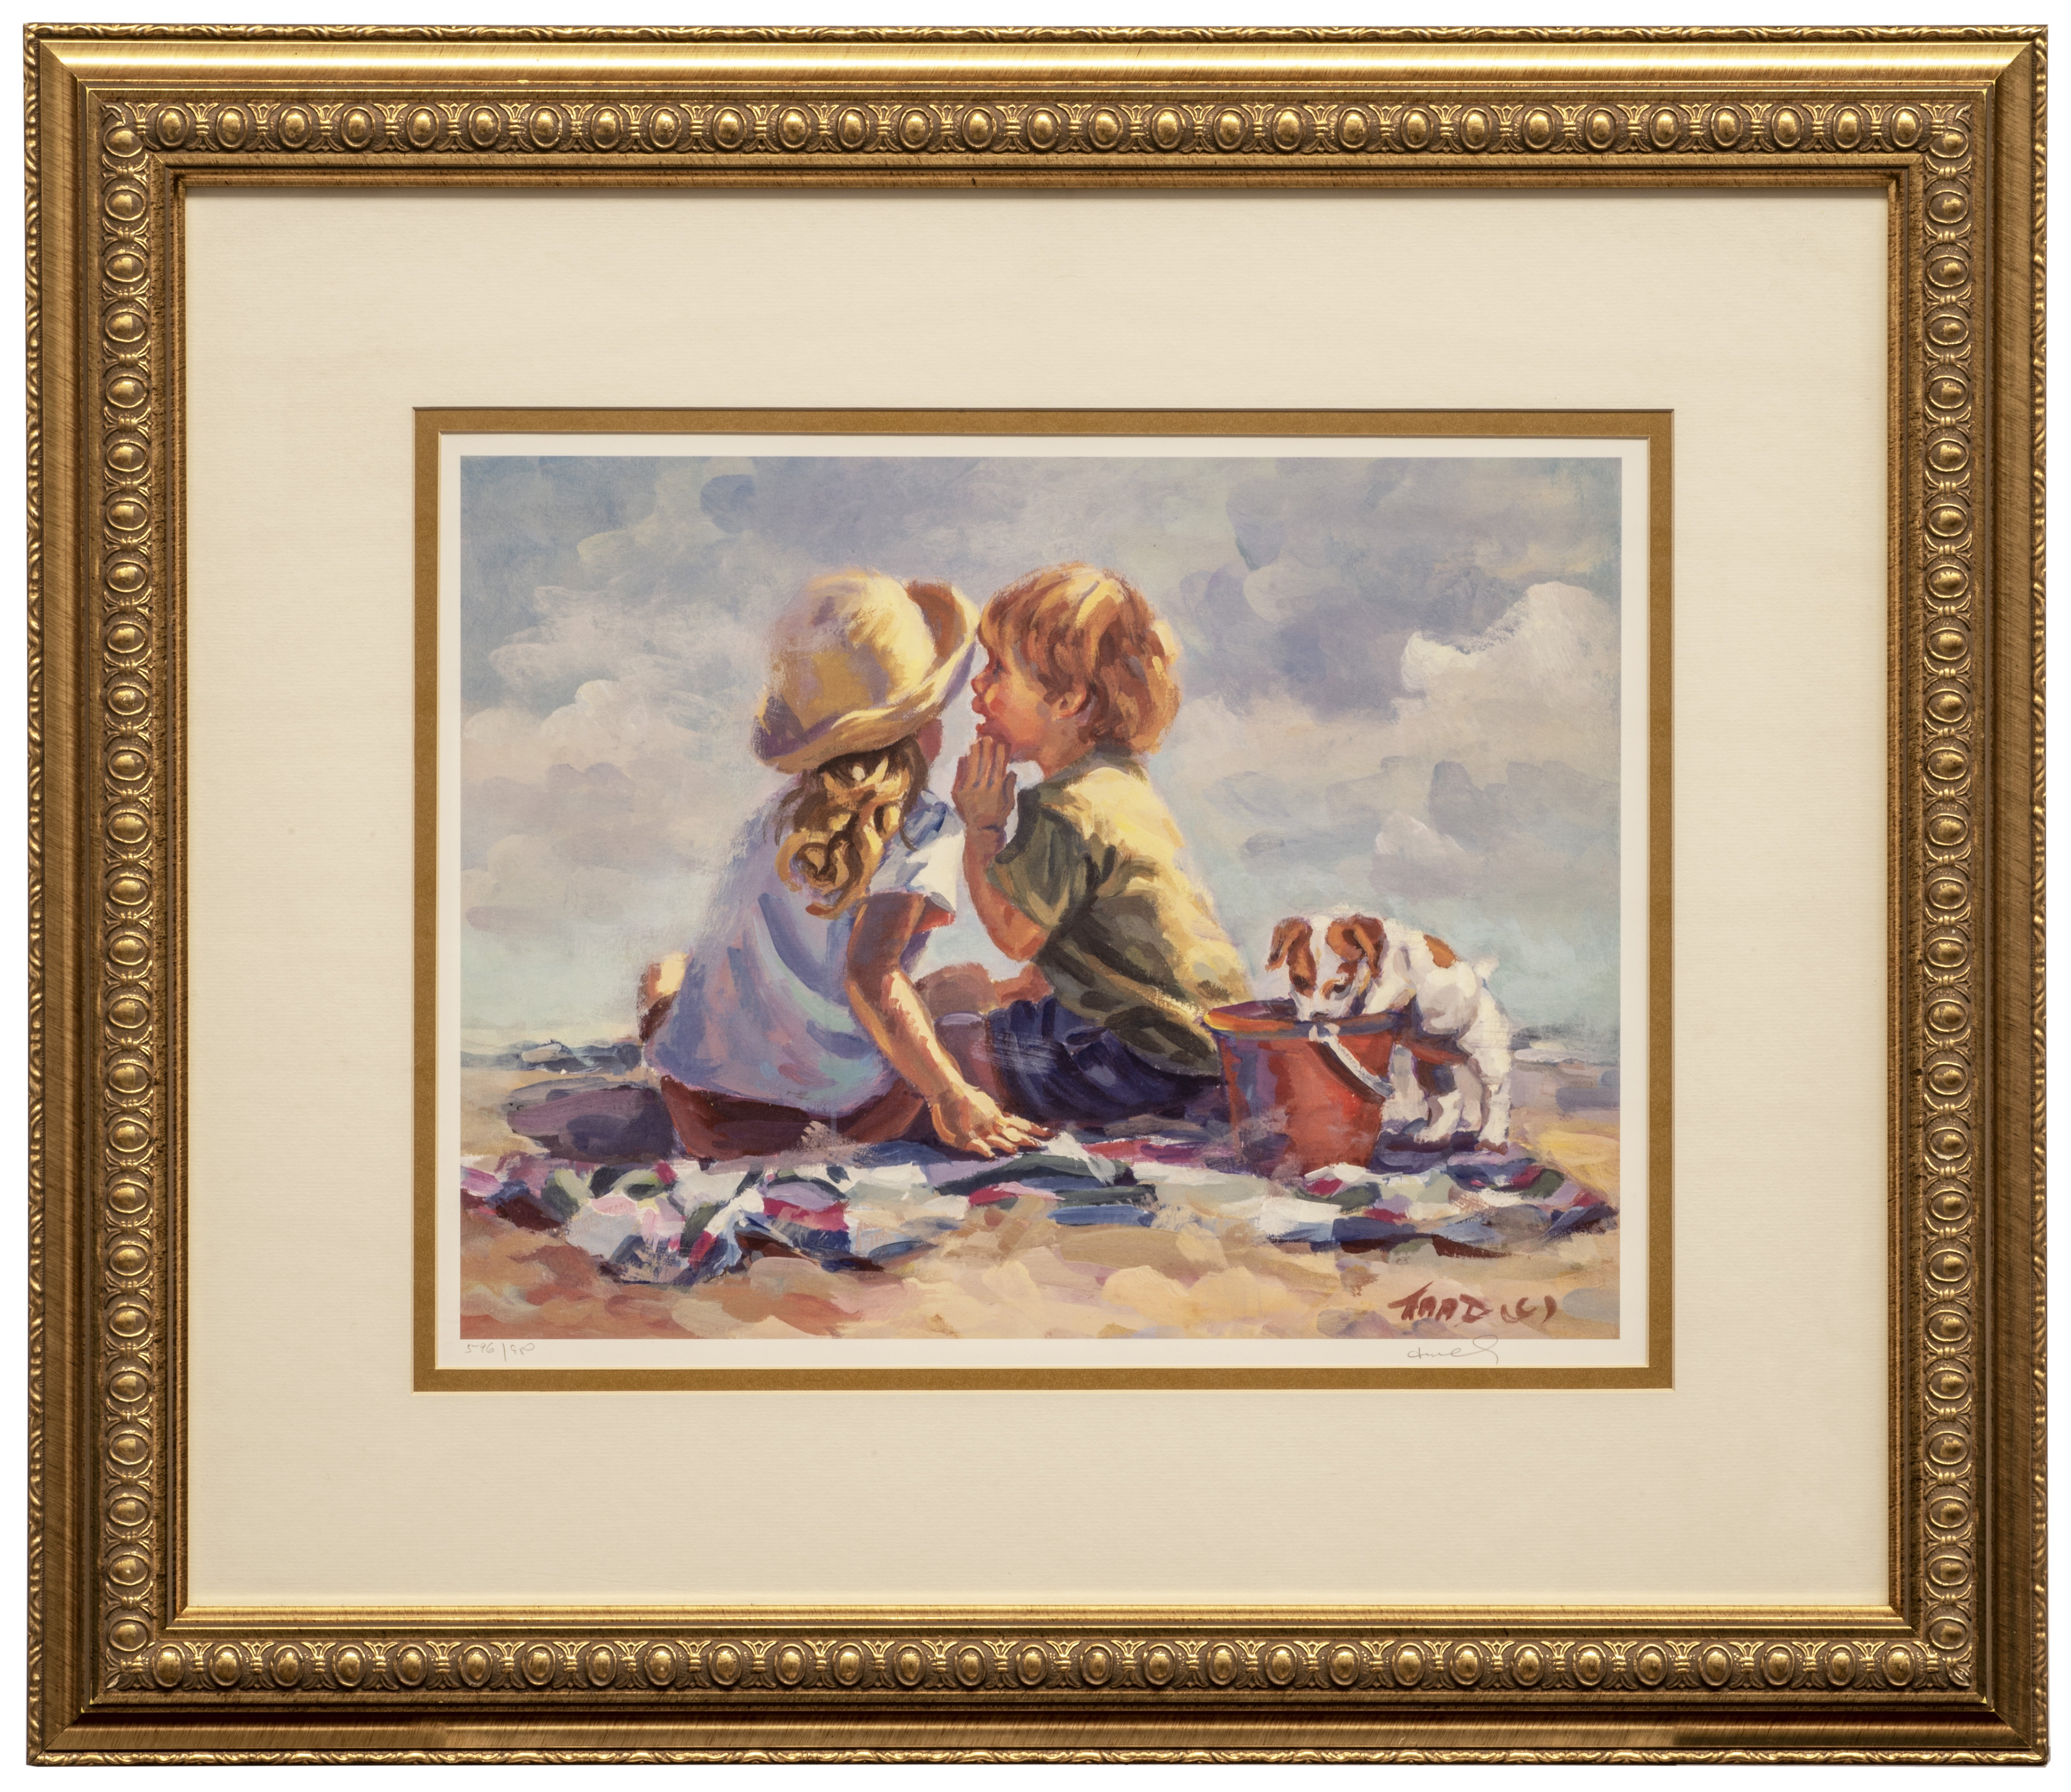 A Framed Offset Lithograph Limited Edition Beach Scene By Lucelle Raad Summer Secrets